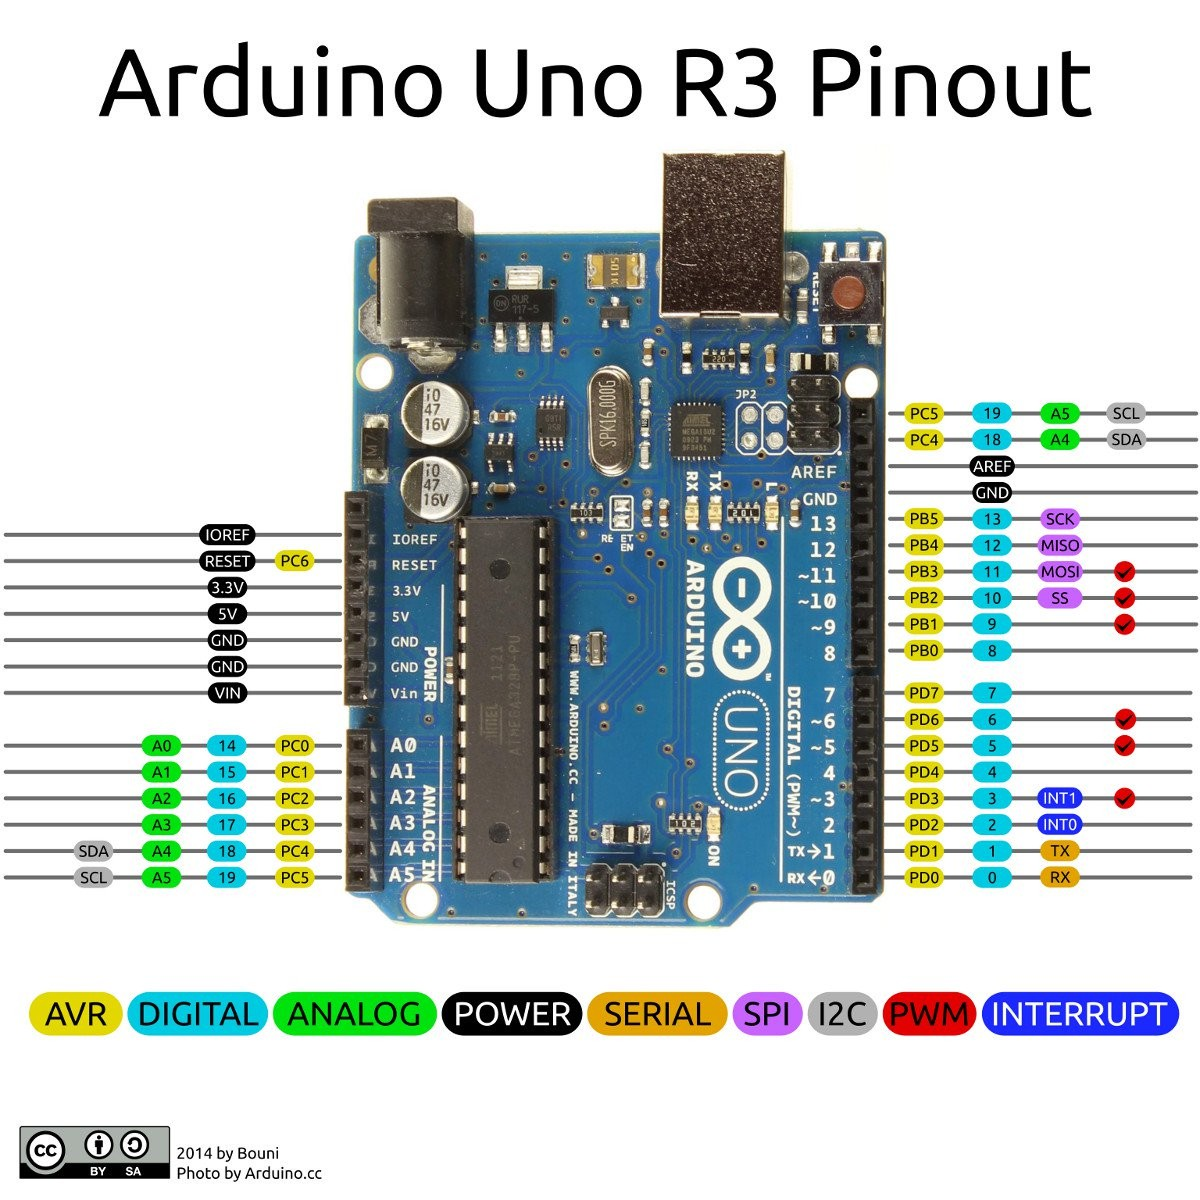 arduino wiring h library application wiring diagram u2022 rh diagramnet today hc-05 arduino wiring arduino wiring h library download